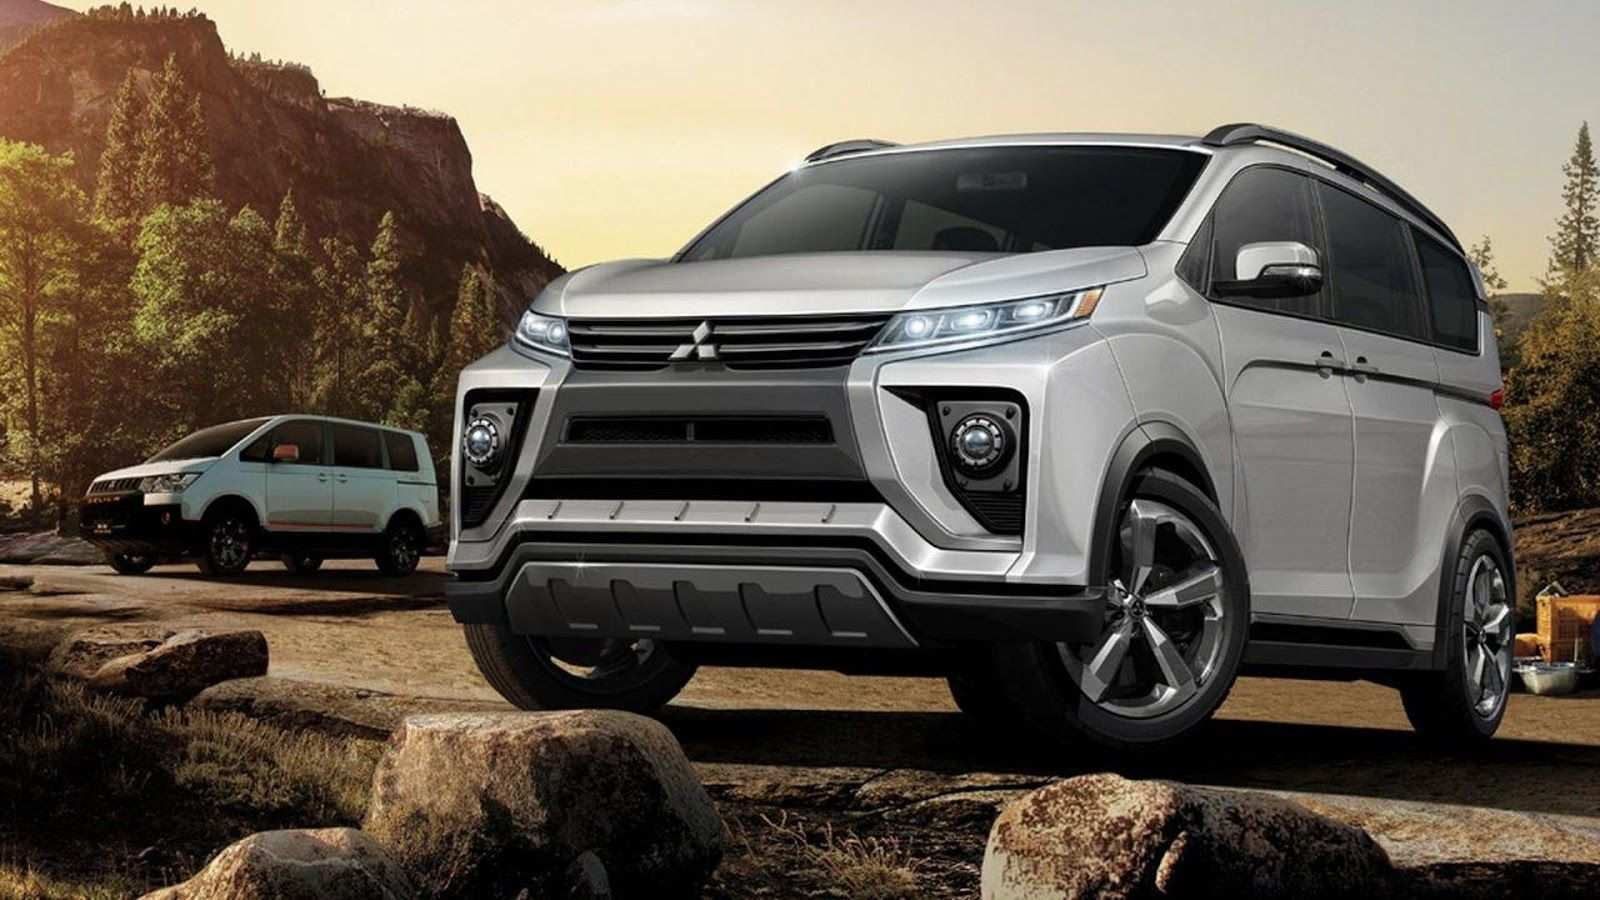 87 Best Review 2019 Mitsubishi Concept Wallpaper by 2019 Mitsubishi Concept